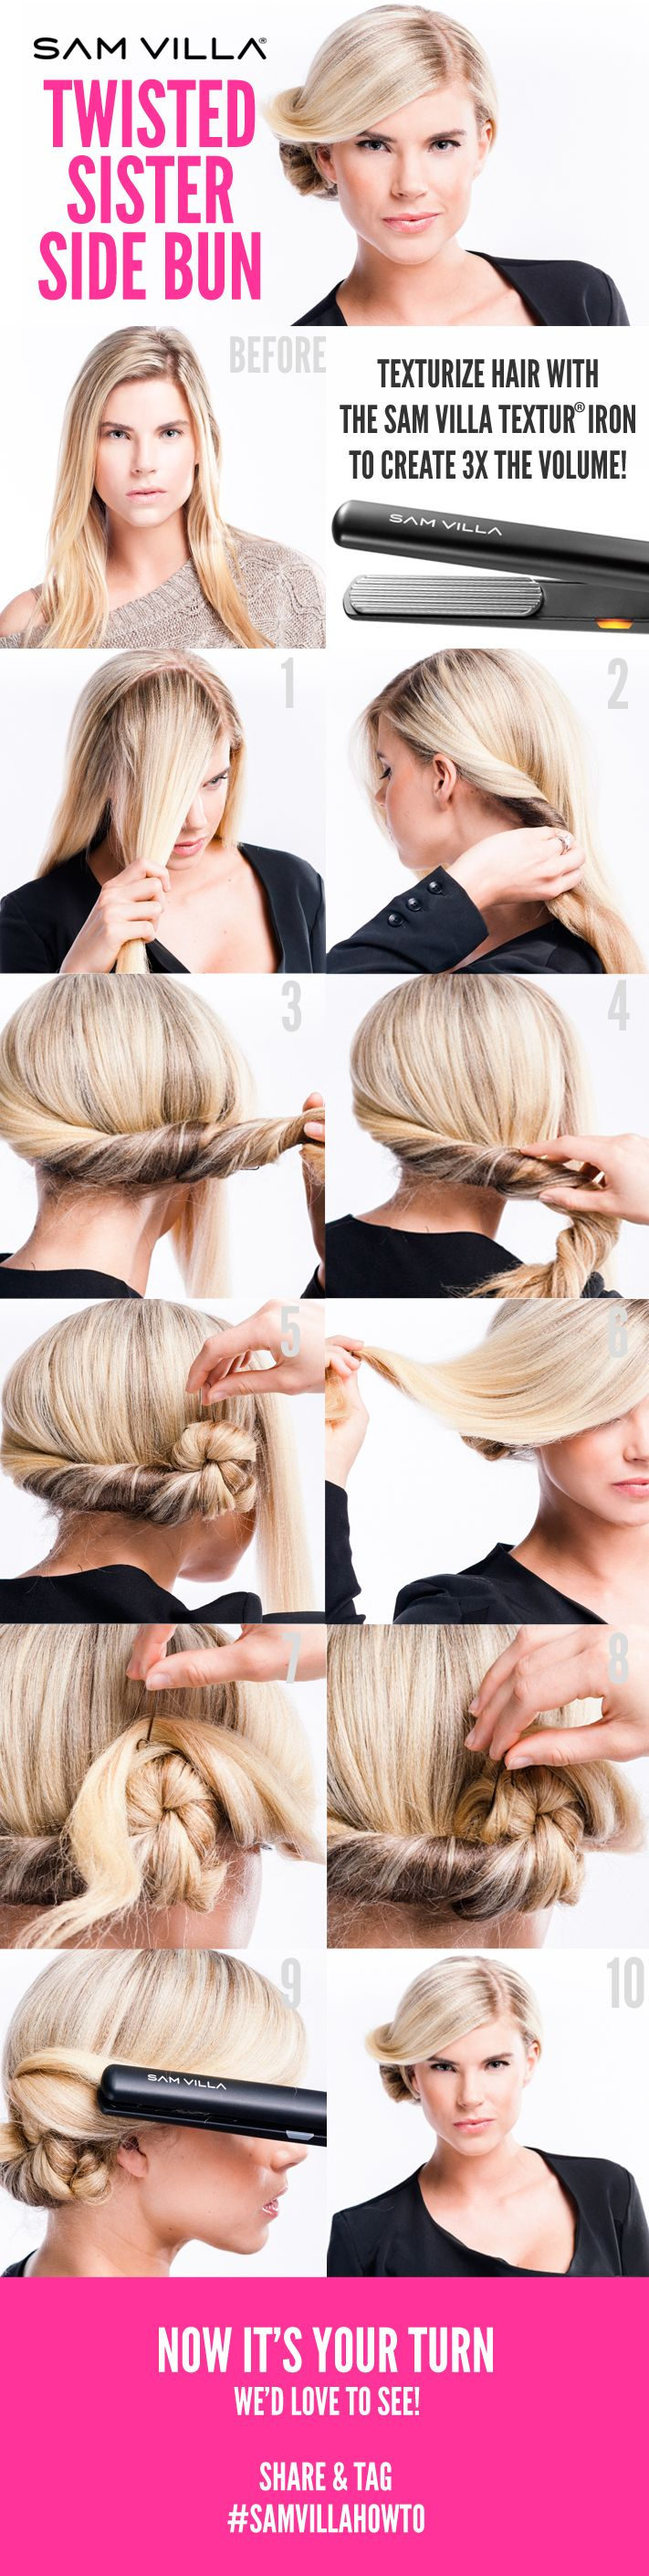 If You Can Twist Your Hair We Have A Super Easy And Fashion Forward Updo For The Twisted Sister Side Bun Is Fun Hairstyle That Be Worn